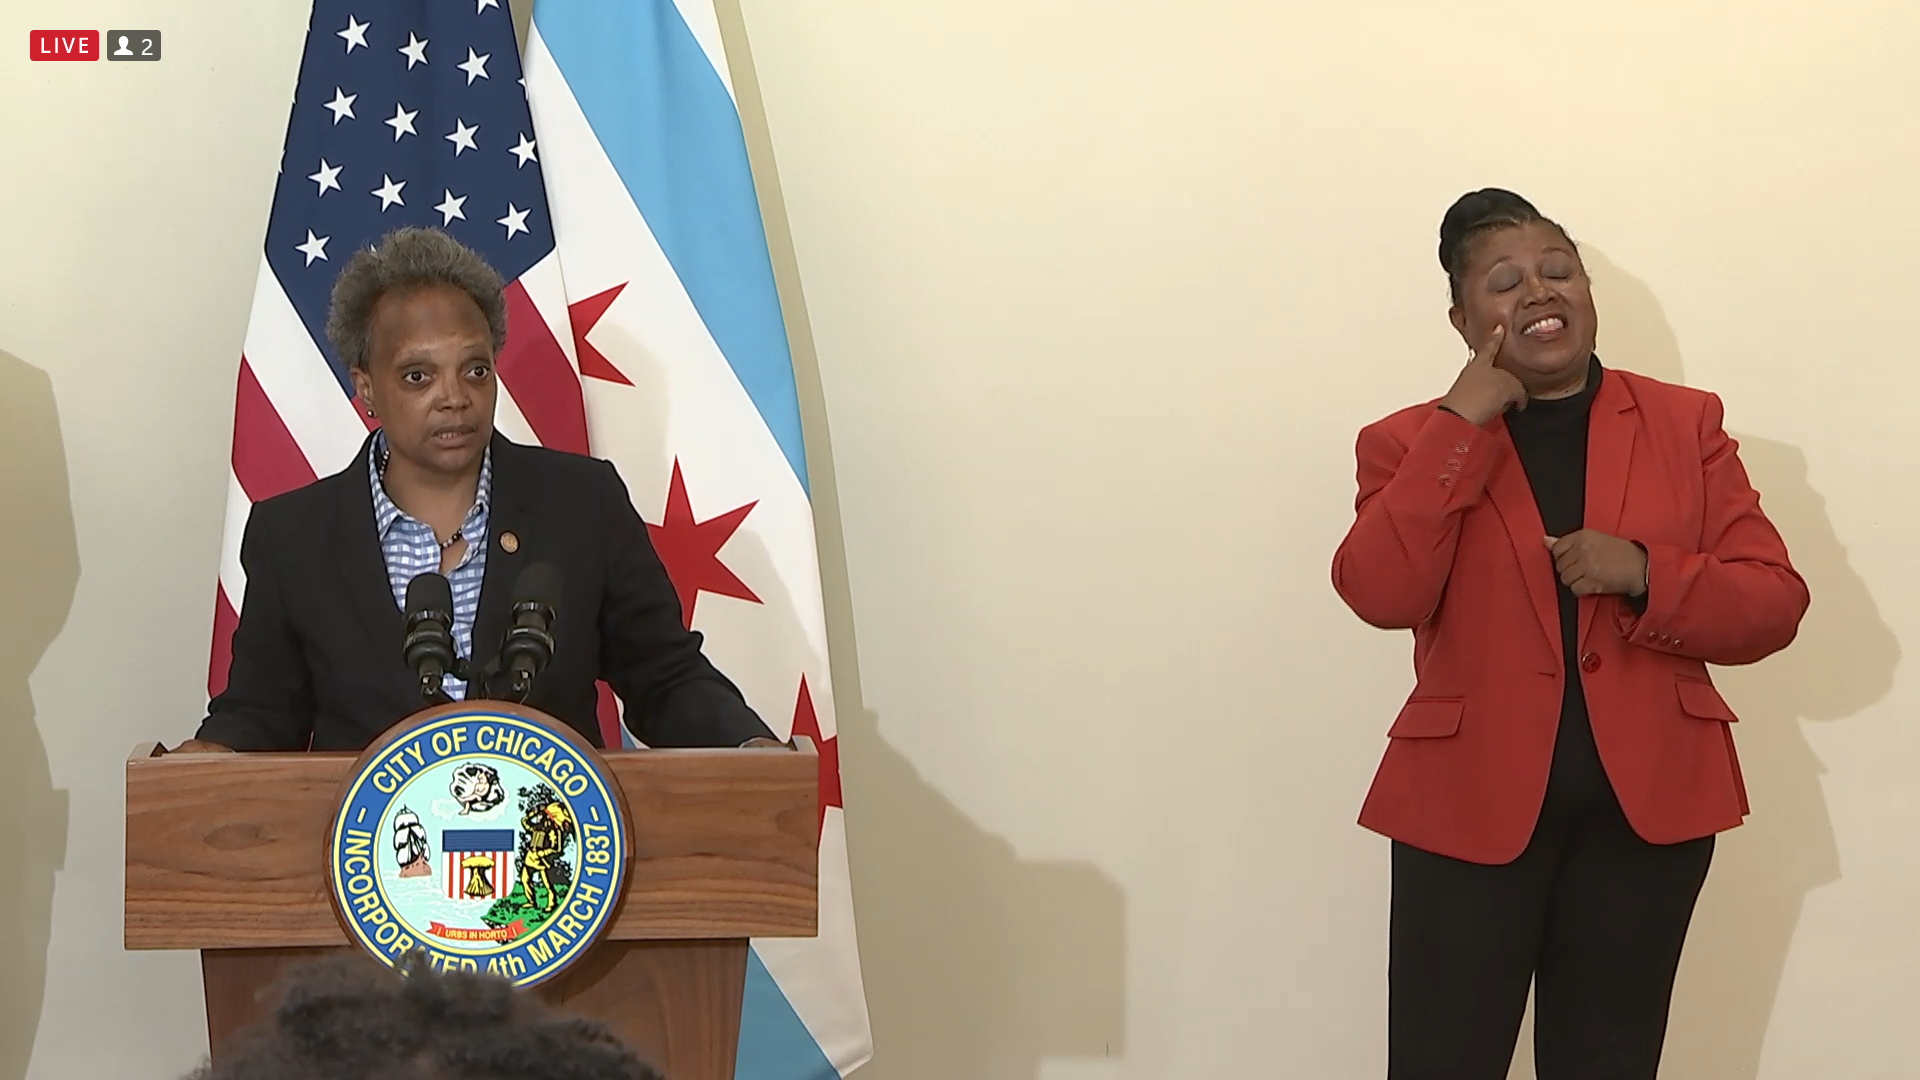 Despite 5 homicides in 50+ weekend shootings, Lightfoot says those stats are trending downward